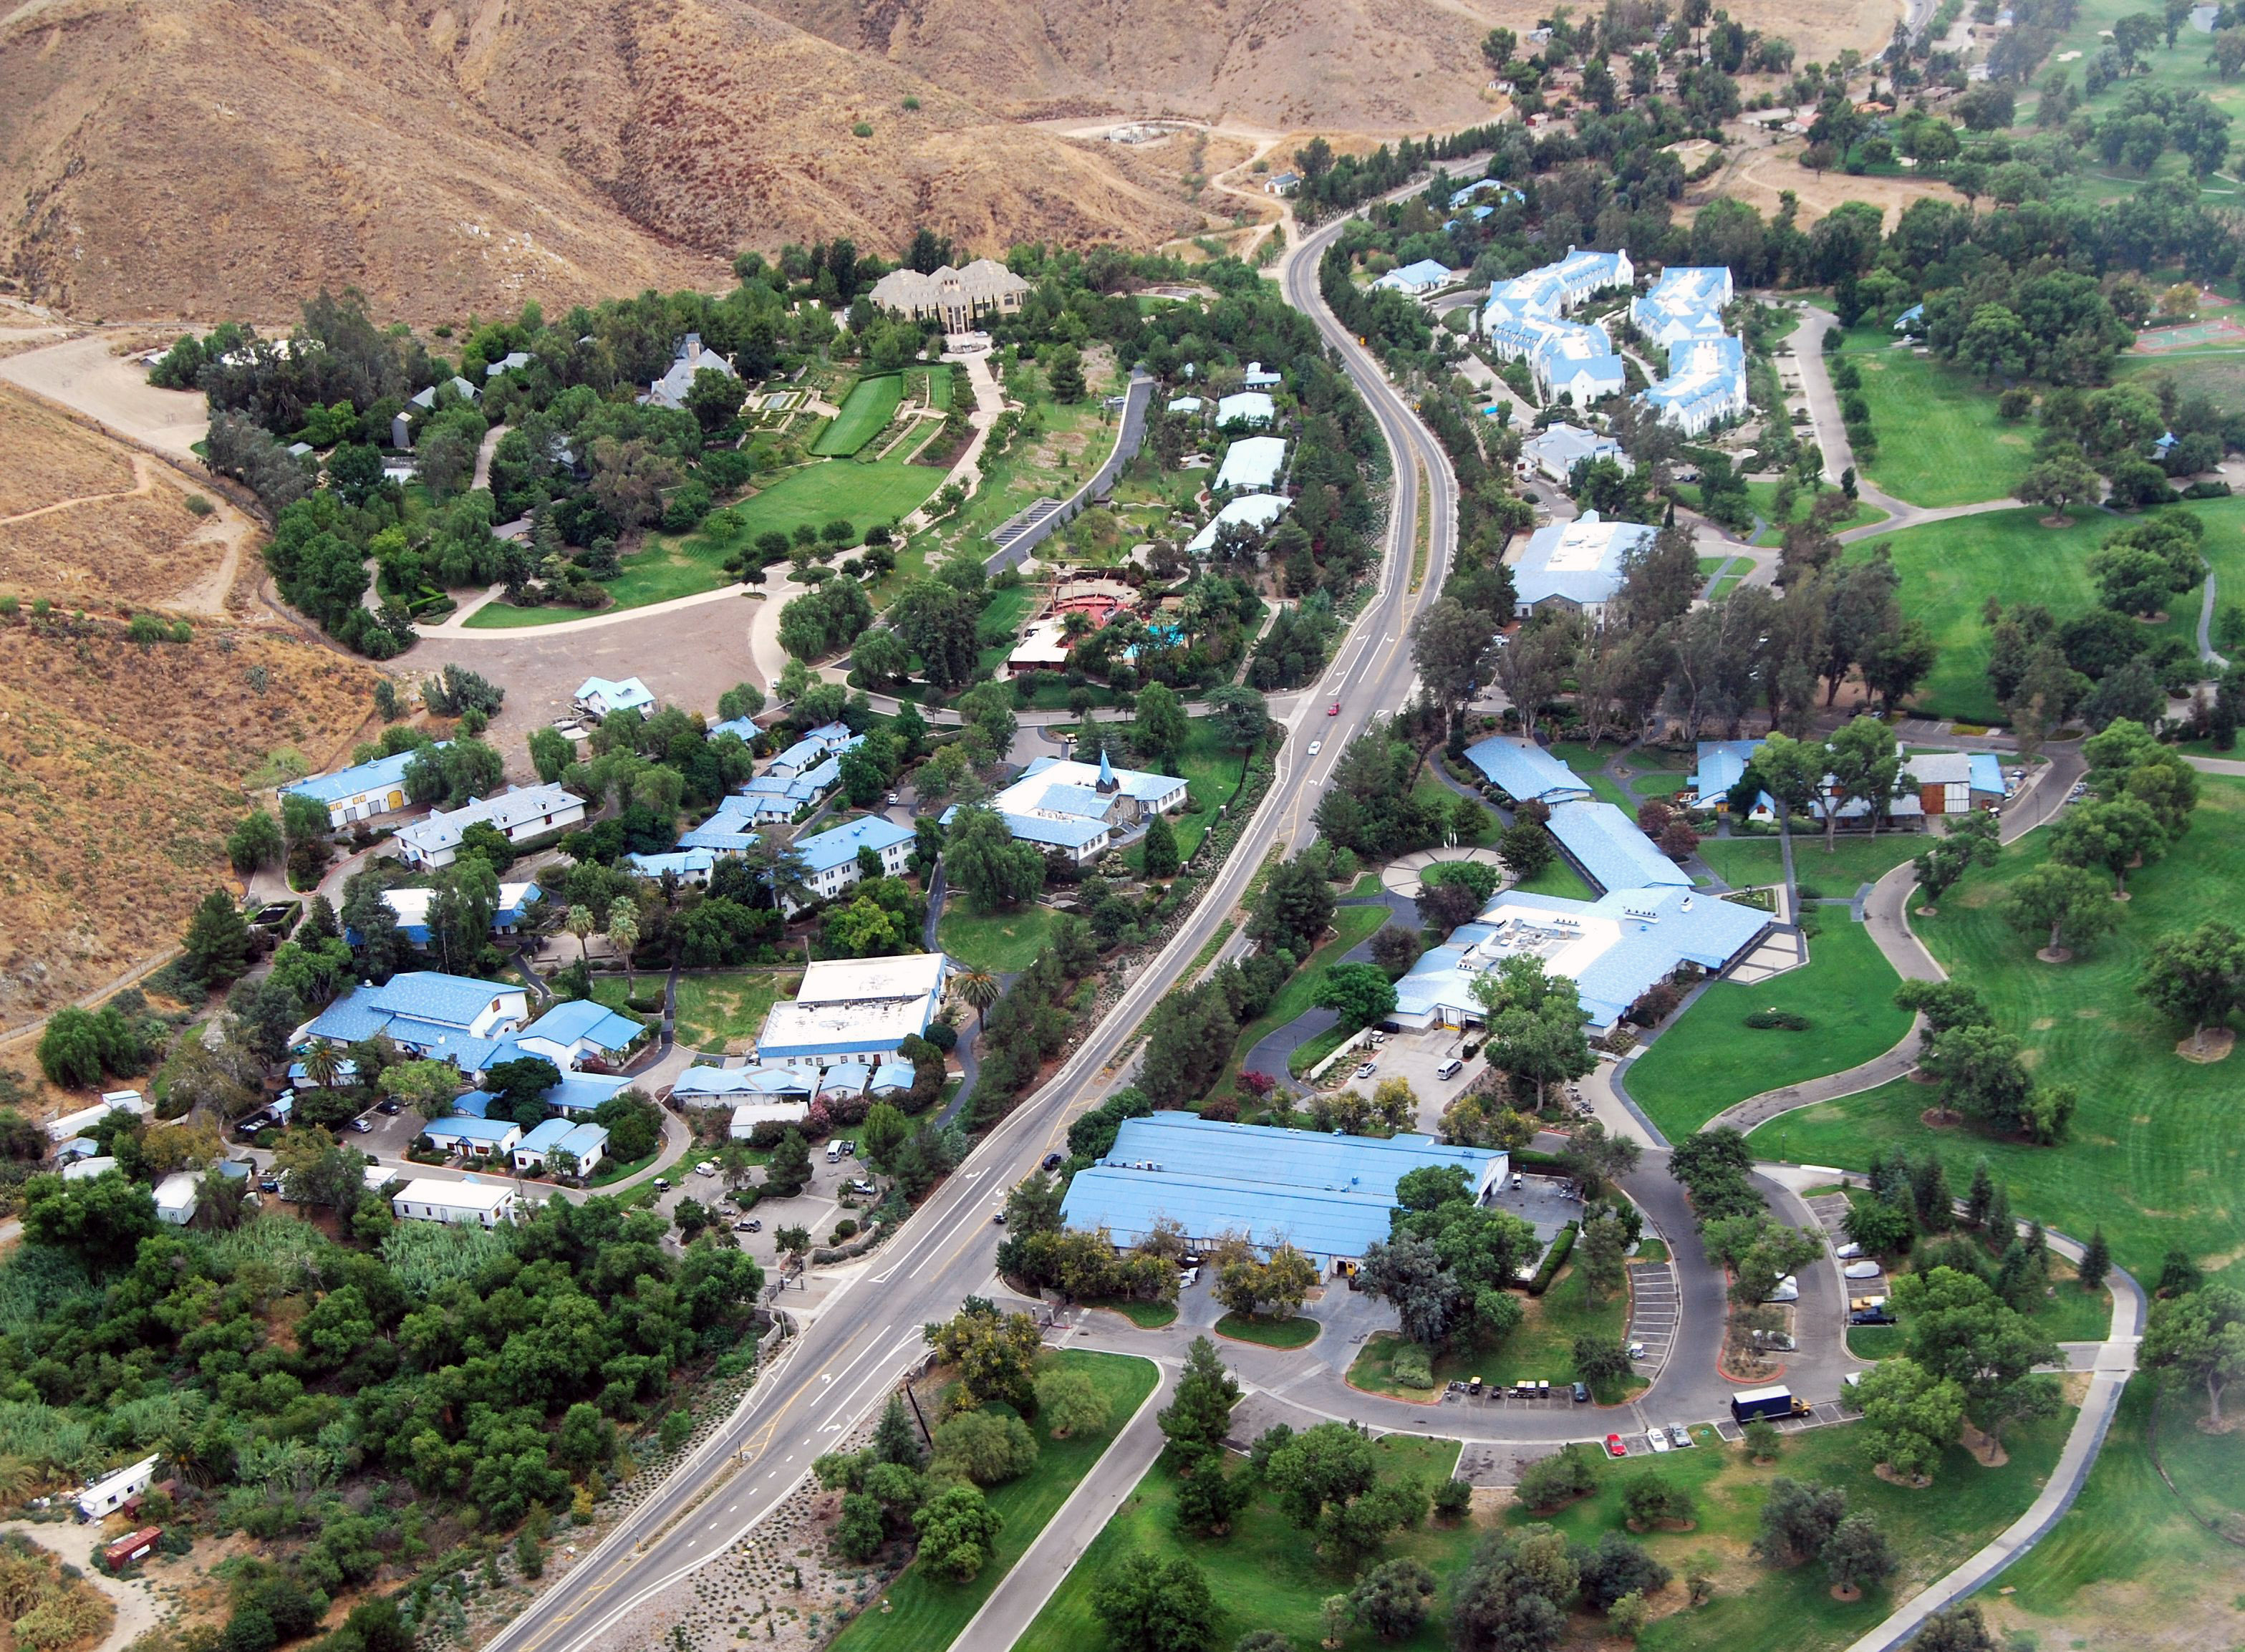 Aerial view of Gold Base from the west, showing the garage in the foreground, with Massacre Canyon Inn behind and the Staff Berthing buildings beyond, to the right of the highway. The buildings in the foreground on the left of the highway are mostly us